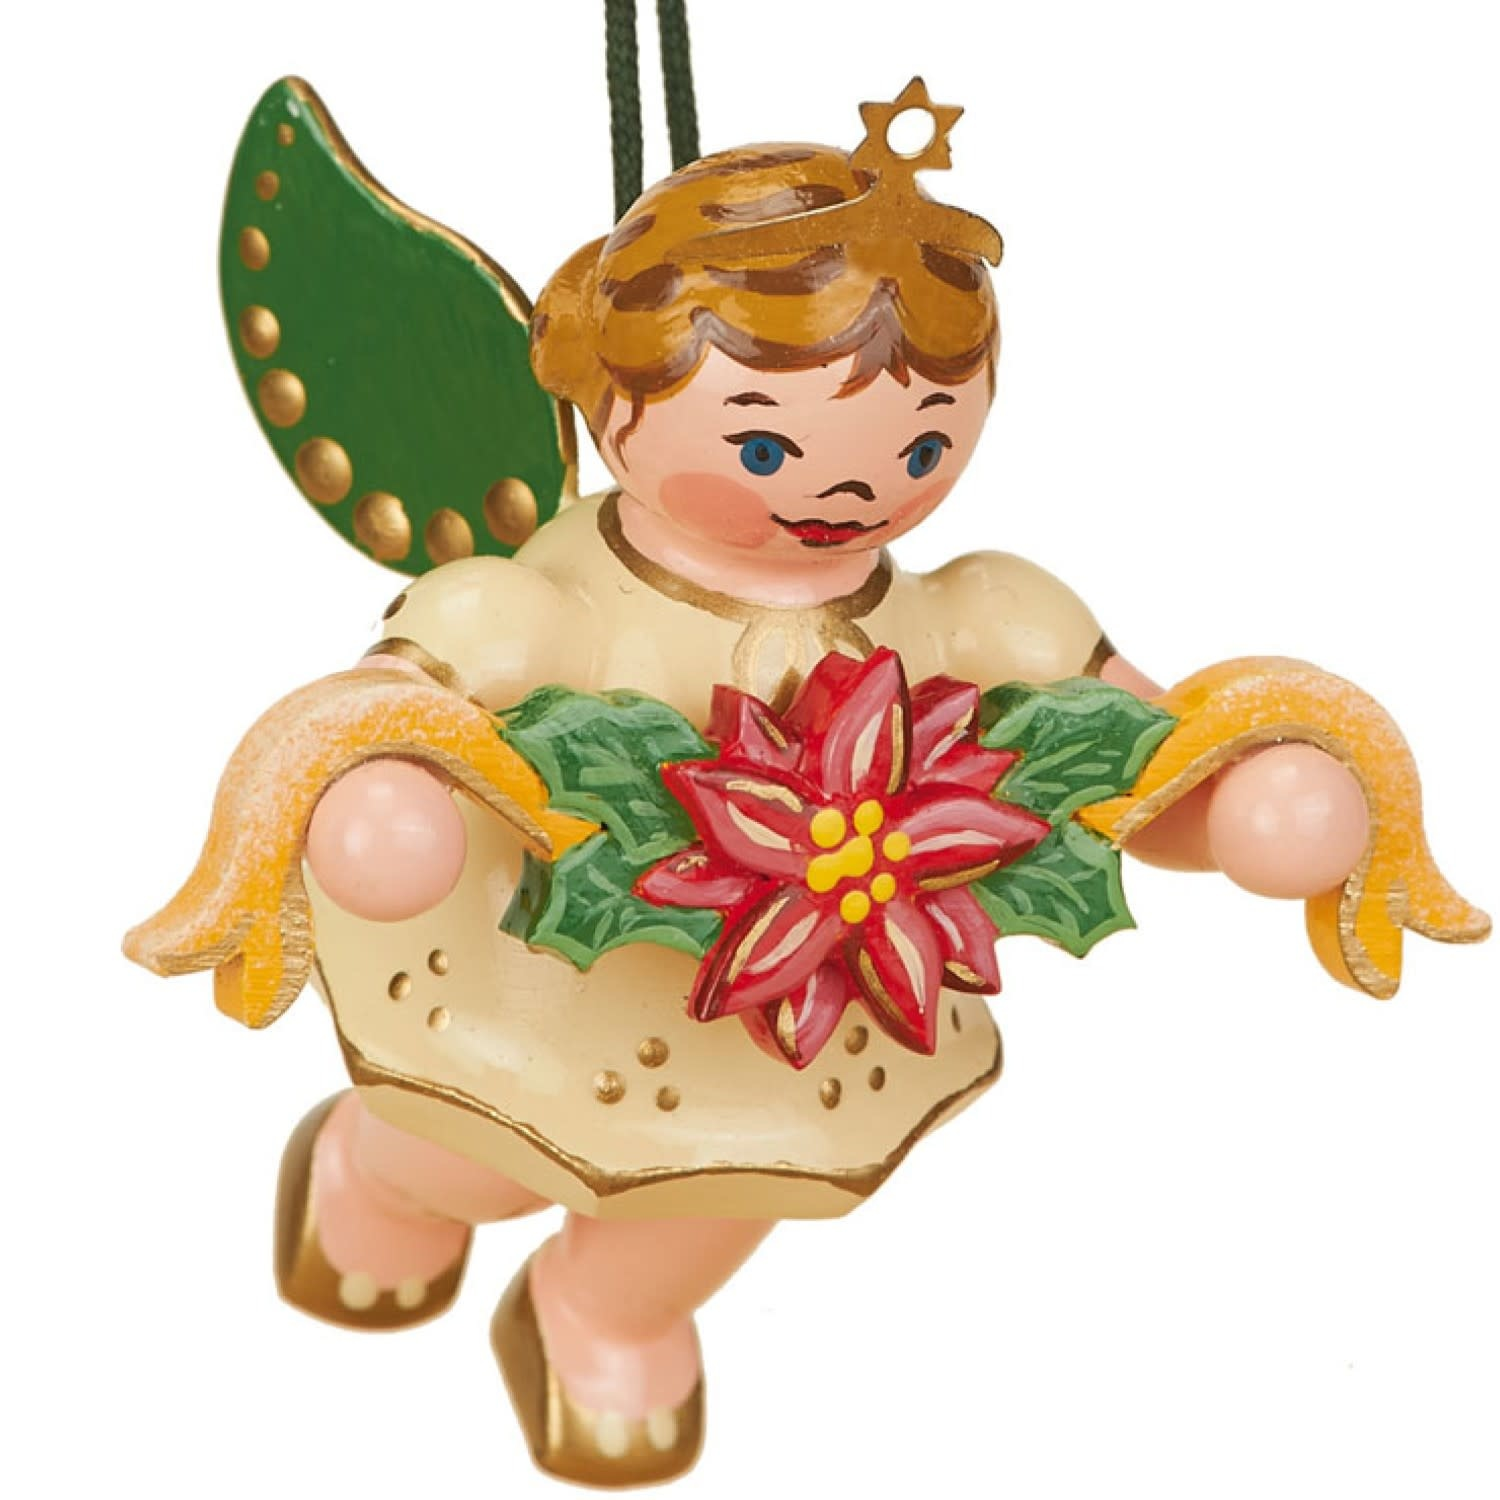 120h1005 Angel with Garland Ornament - 2.36 inches high